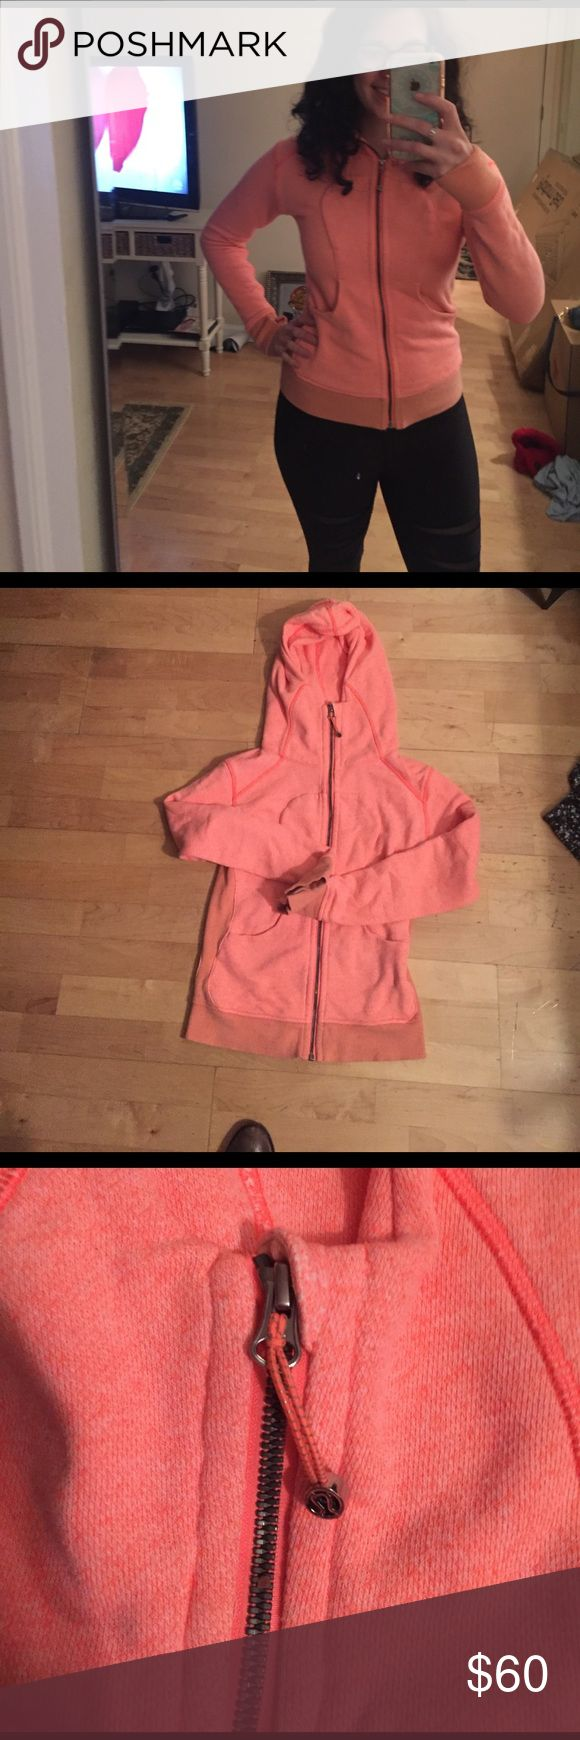 Lululemon scuba hoodie neon orange/pink color 🍋Lululemon scuba hoodie ( lighter fabric! Rare!) 🍋size 2 but fits up to 4-6( my size) great condition!( it came heathered so the darker color in the sleeves isn't dirty scouts honor! )it's not the typical thick scuba fabric -- it's a lighter stretchy terry cloth type. It's a rare summer edition.🌞 lululemon athletica Tops Sweatshirts & Hoodies